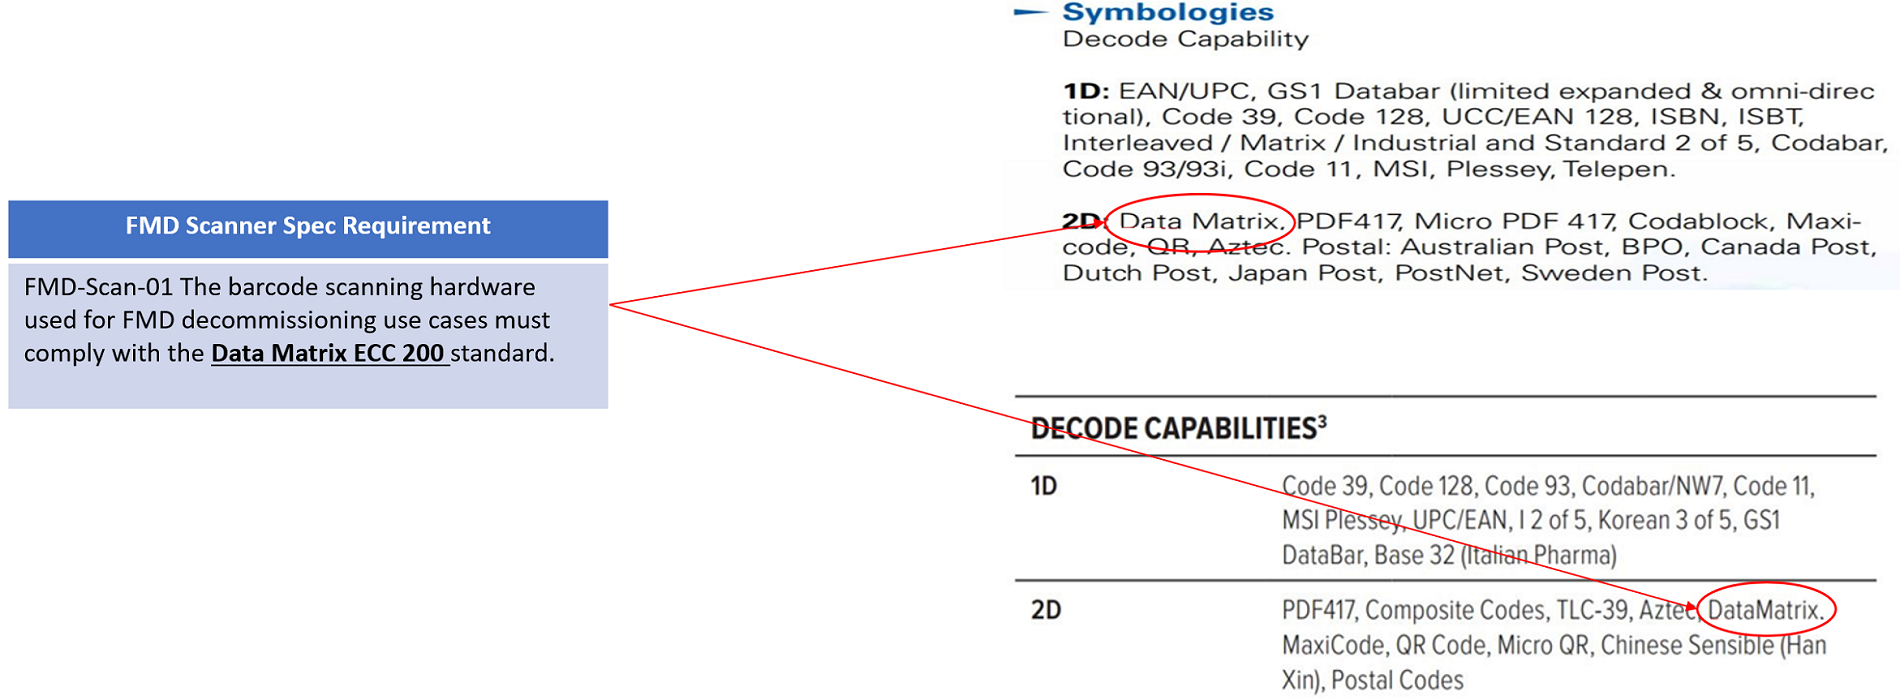 image showing what to look for on a FMD scanner decode capabilities